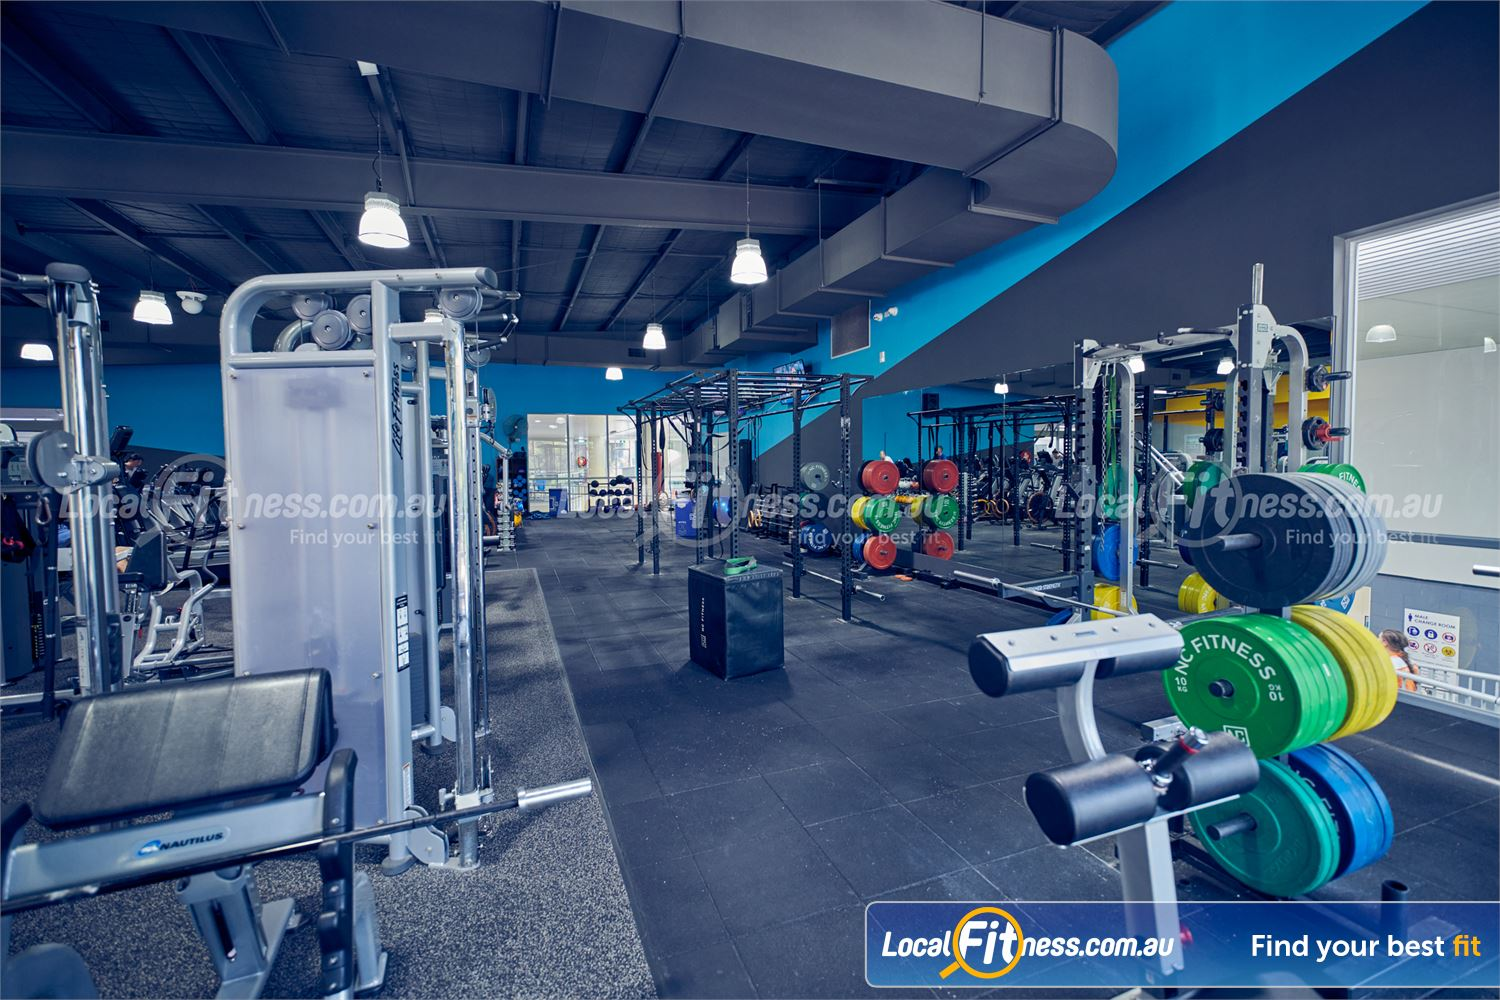 Knox Leisureworks Boronia Train when you want with 24 hour Boronia gym access in Knox.